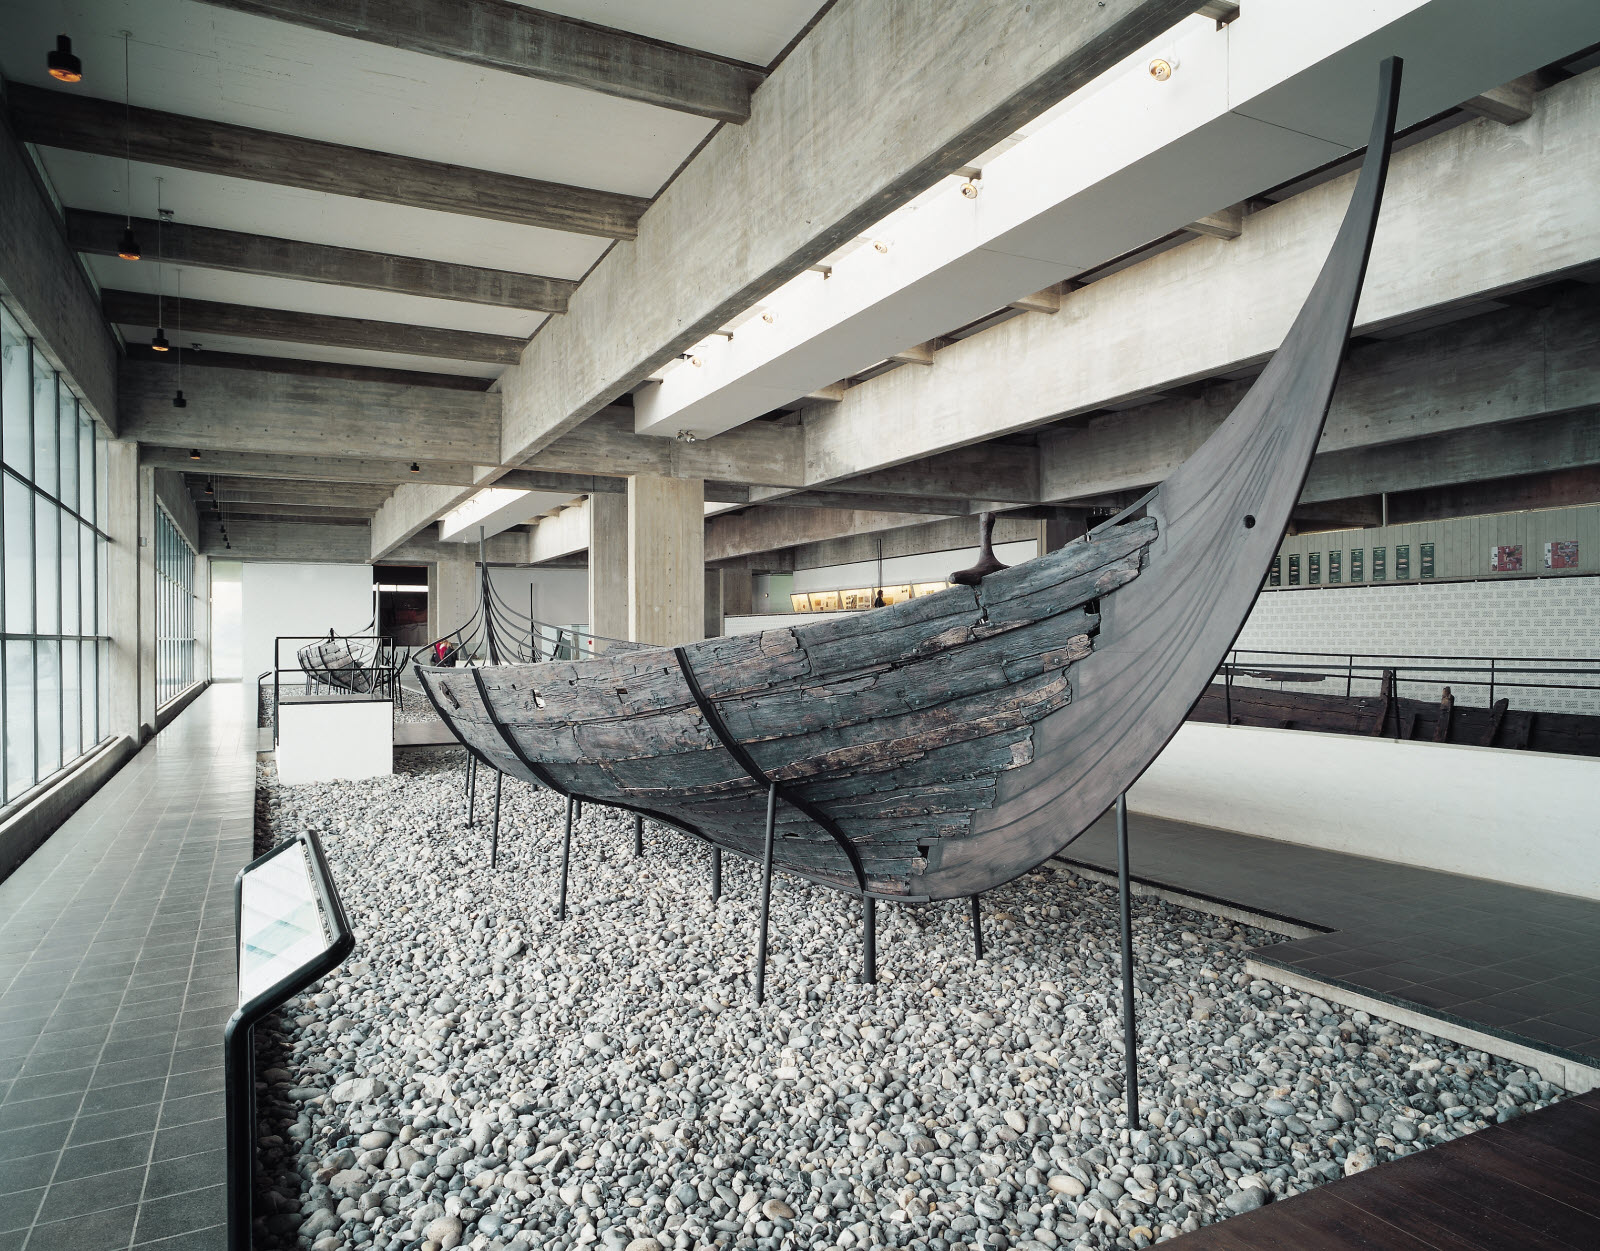 Viking ship, the museum of viking ships